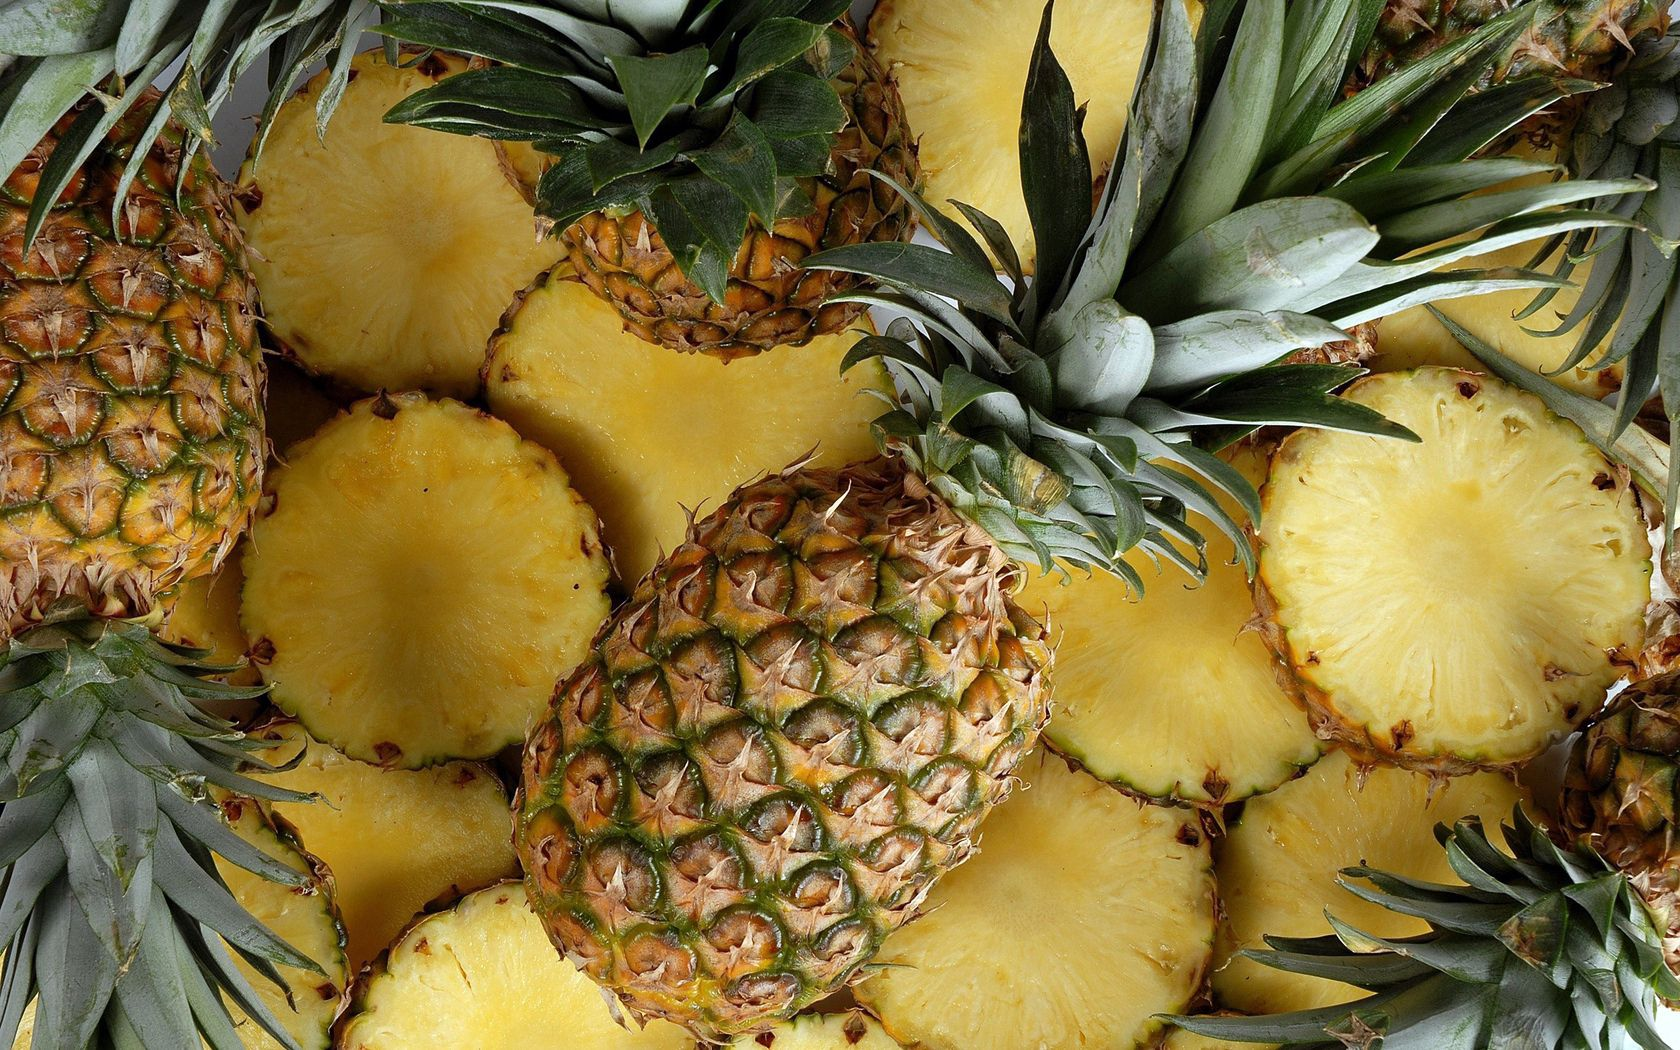 51174 download wallpaper Fruits, Food, Background, Pineapples, Lobules, Slices screensavers and pictures for free